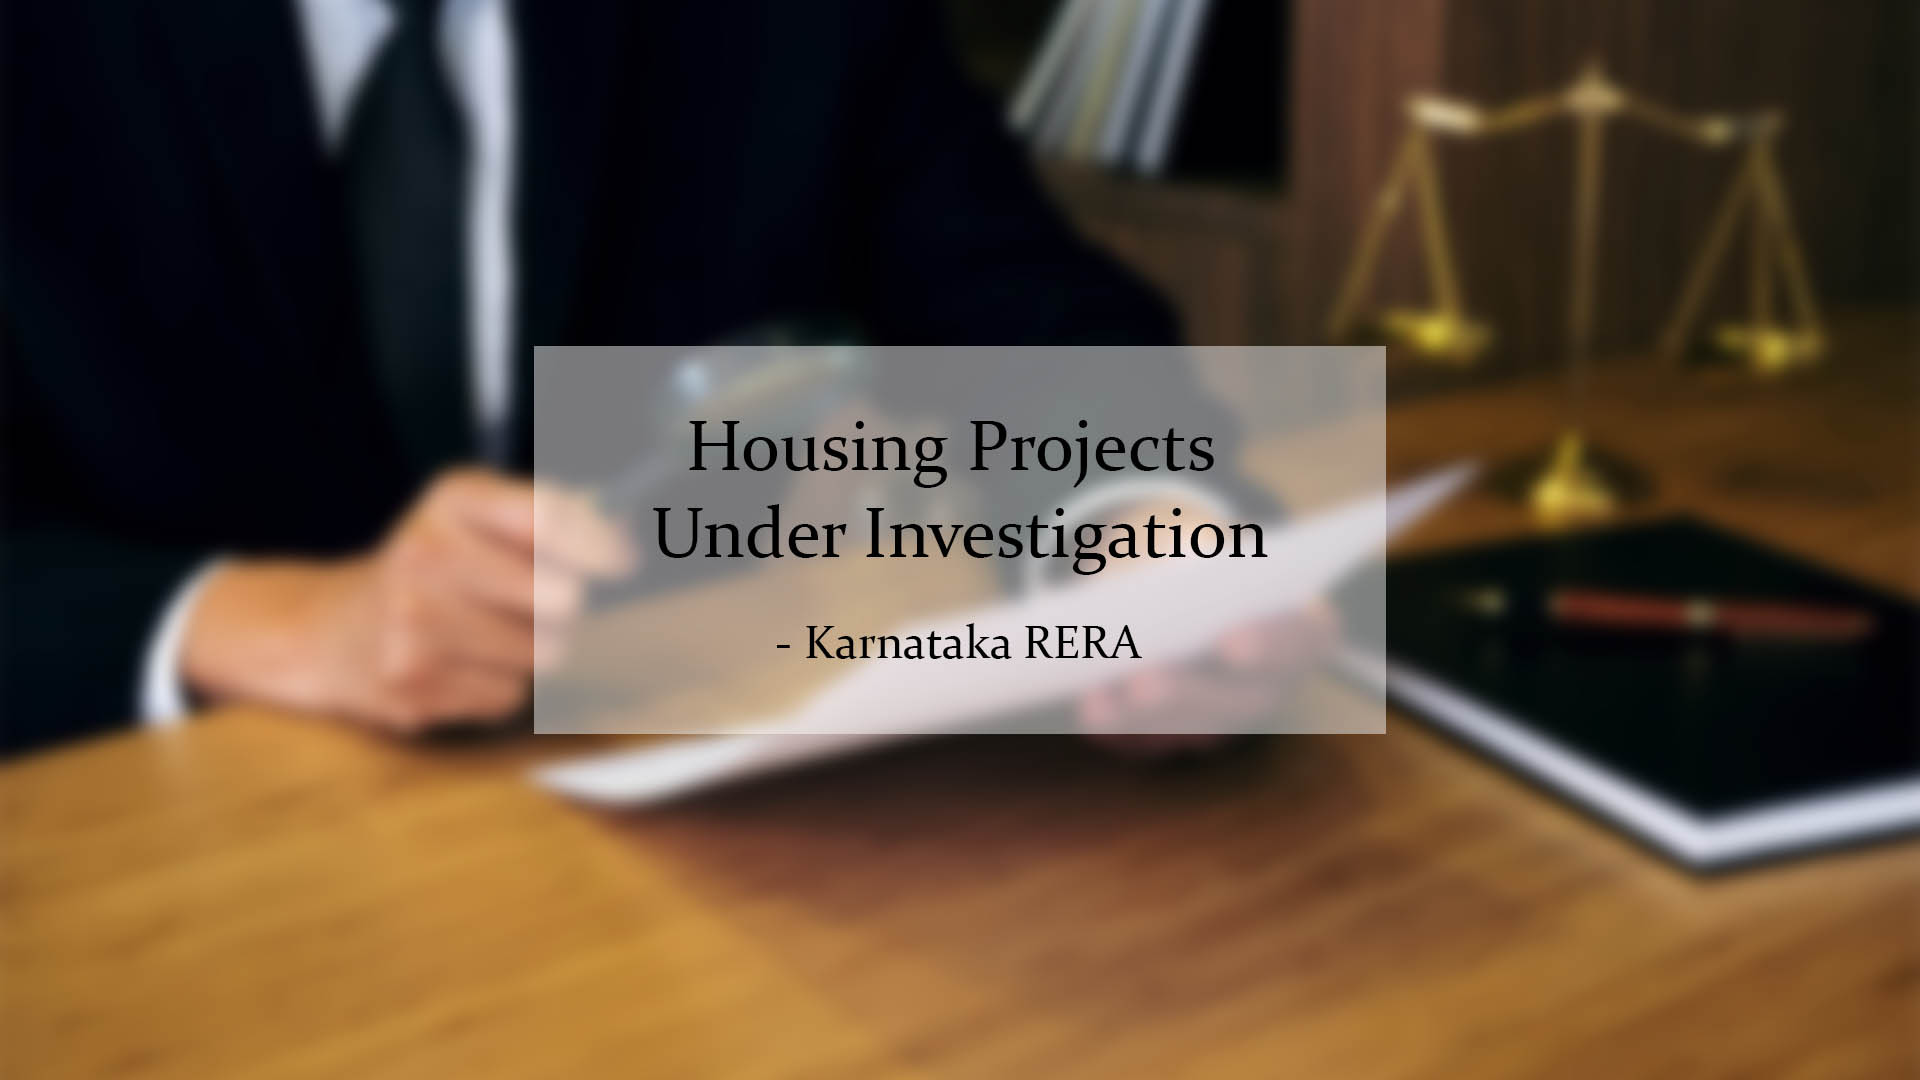 Housing Projects Under Investigation By Karnataka RERA